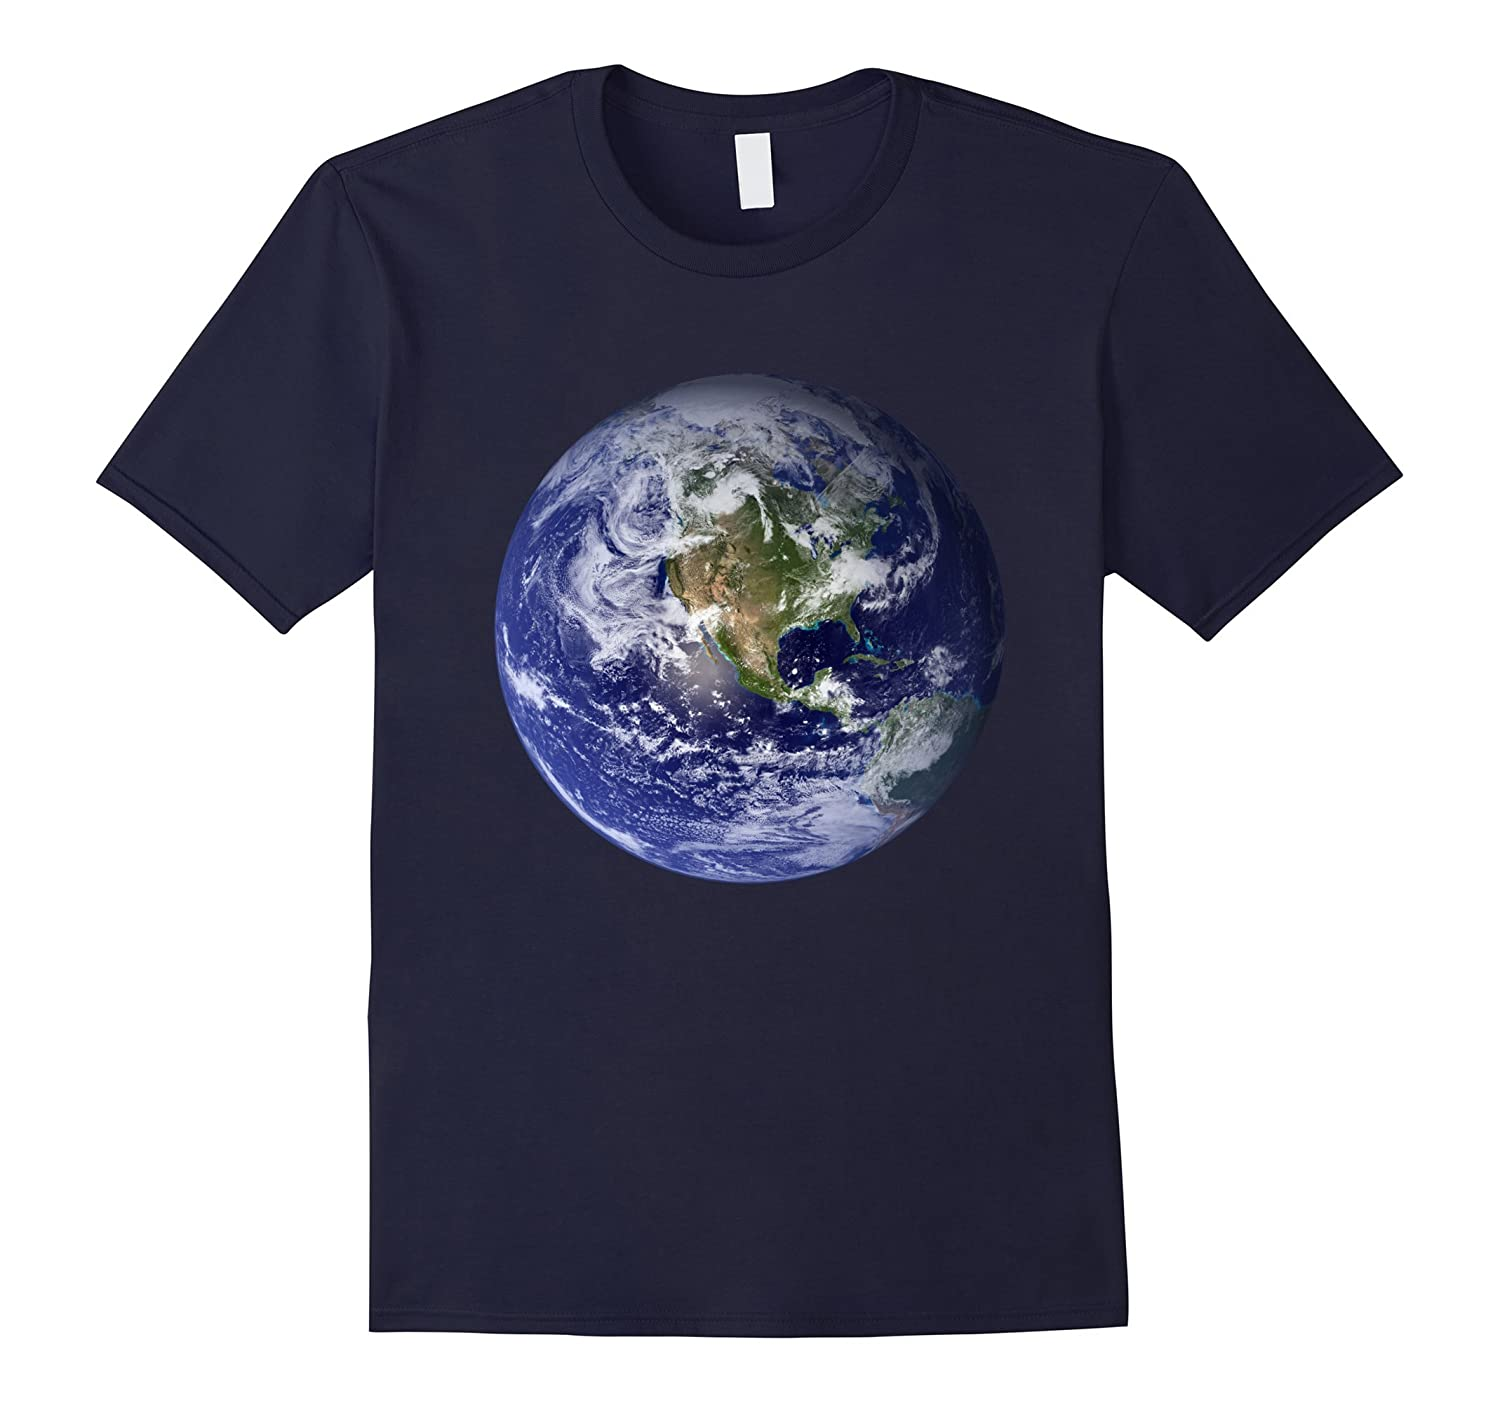 Earth Planet T-Shirt Our Home In The Unsiverse-T-Shirt